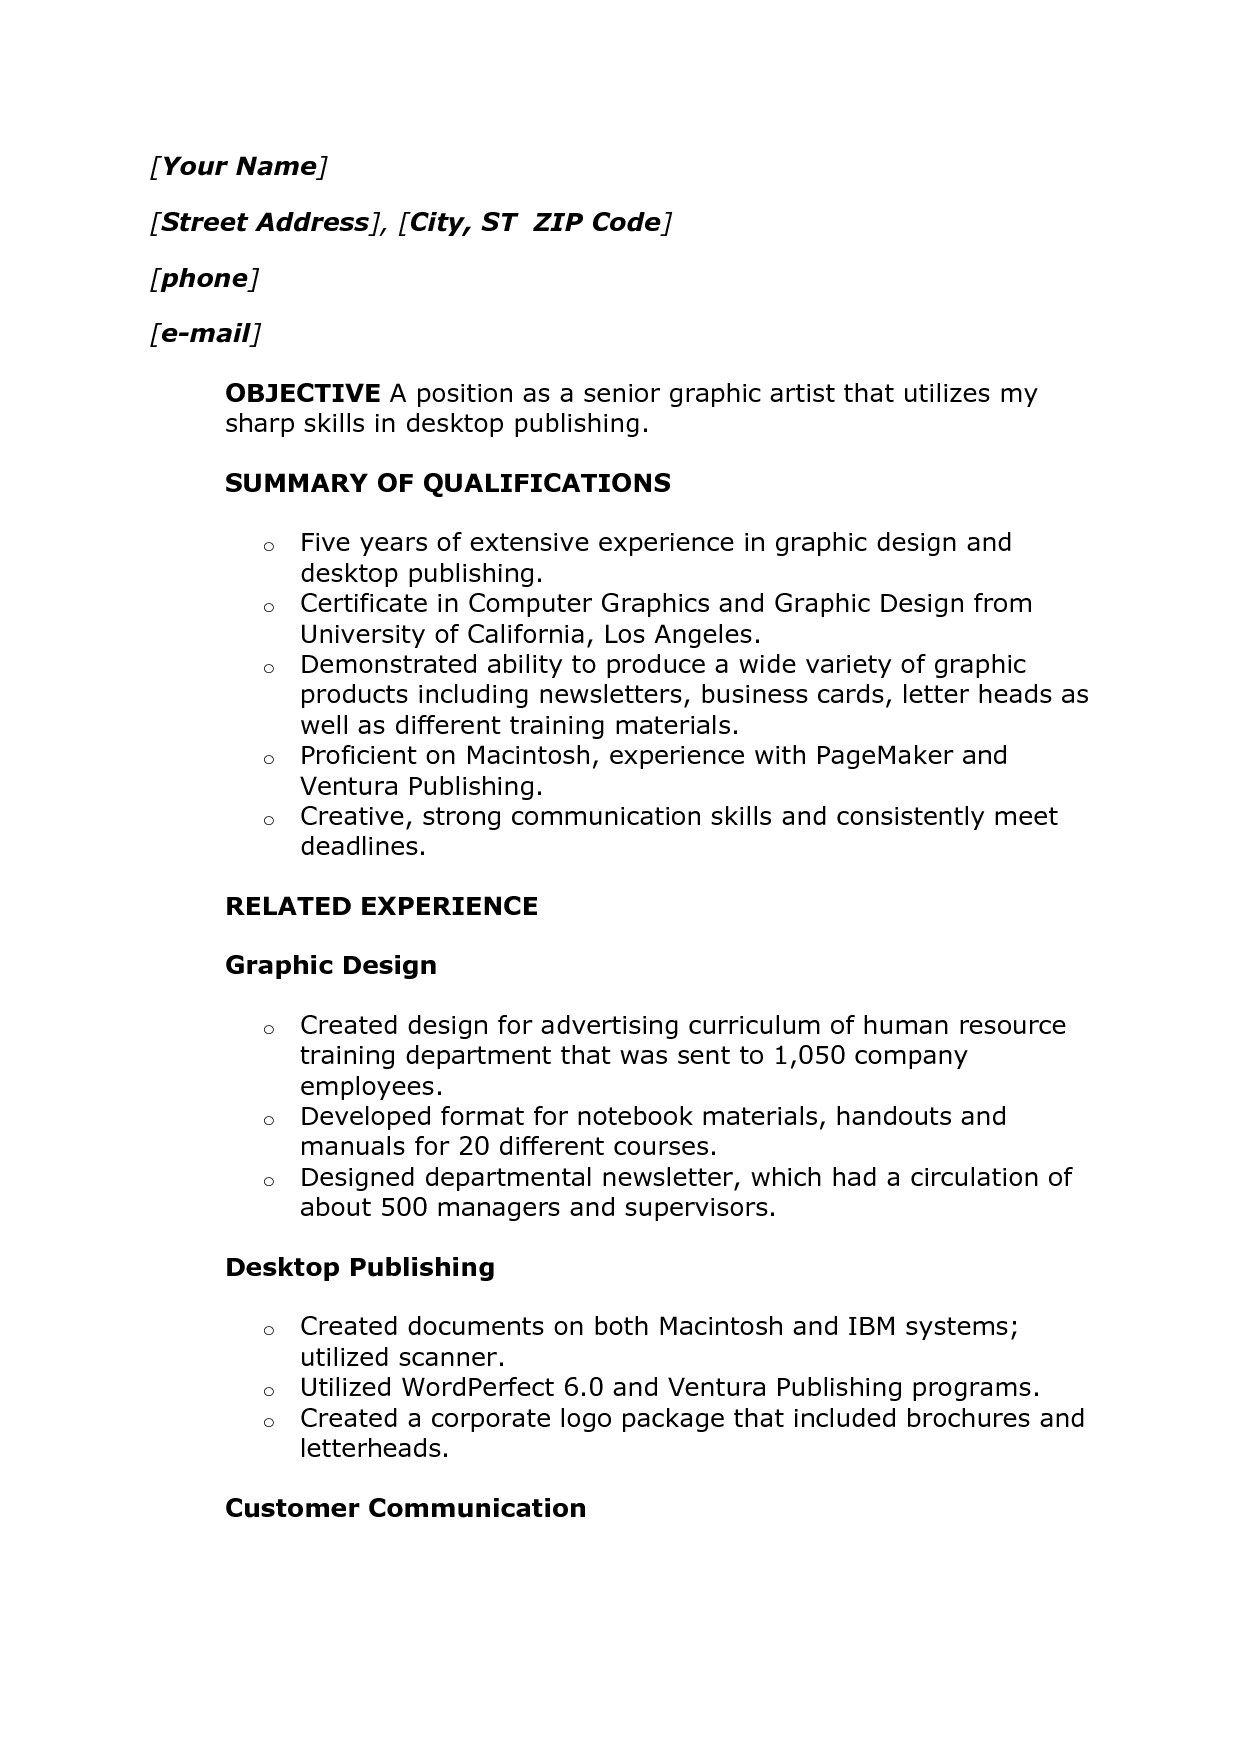 Job Application Letter Full Block Format With Basic Optional Parts Layout